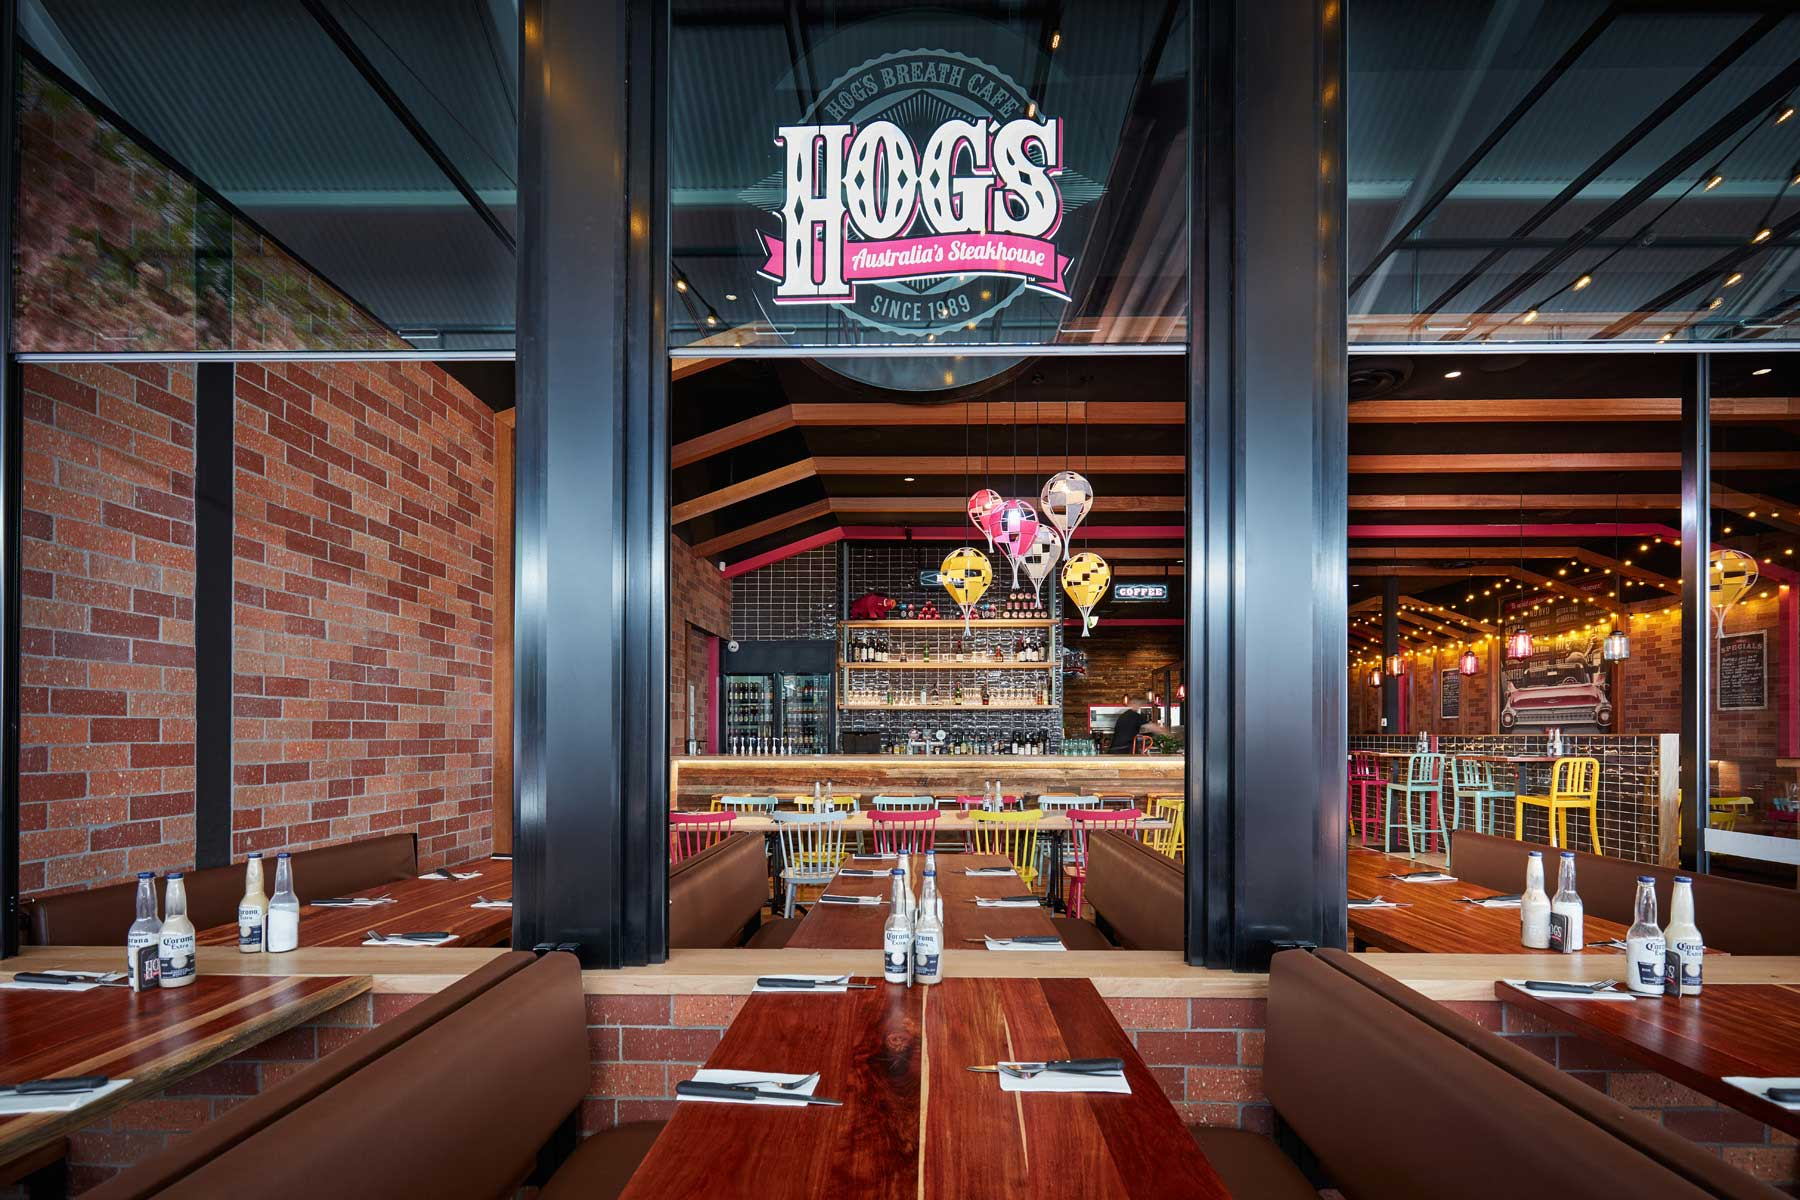 Hog's Breath, Knox - interior design by Studio Y.